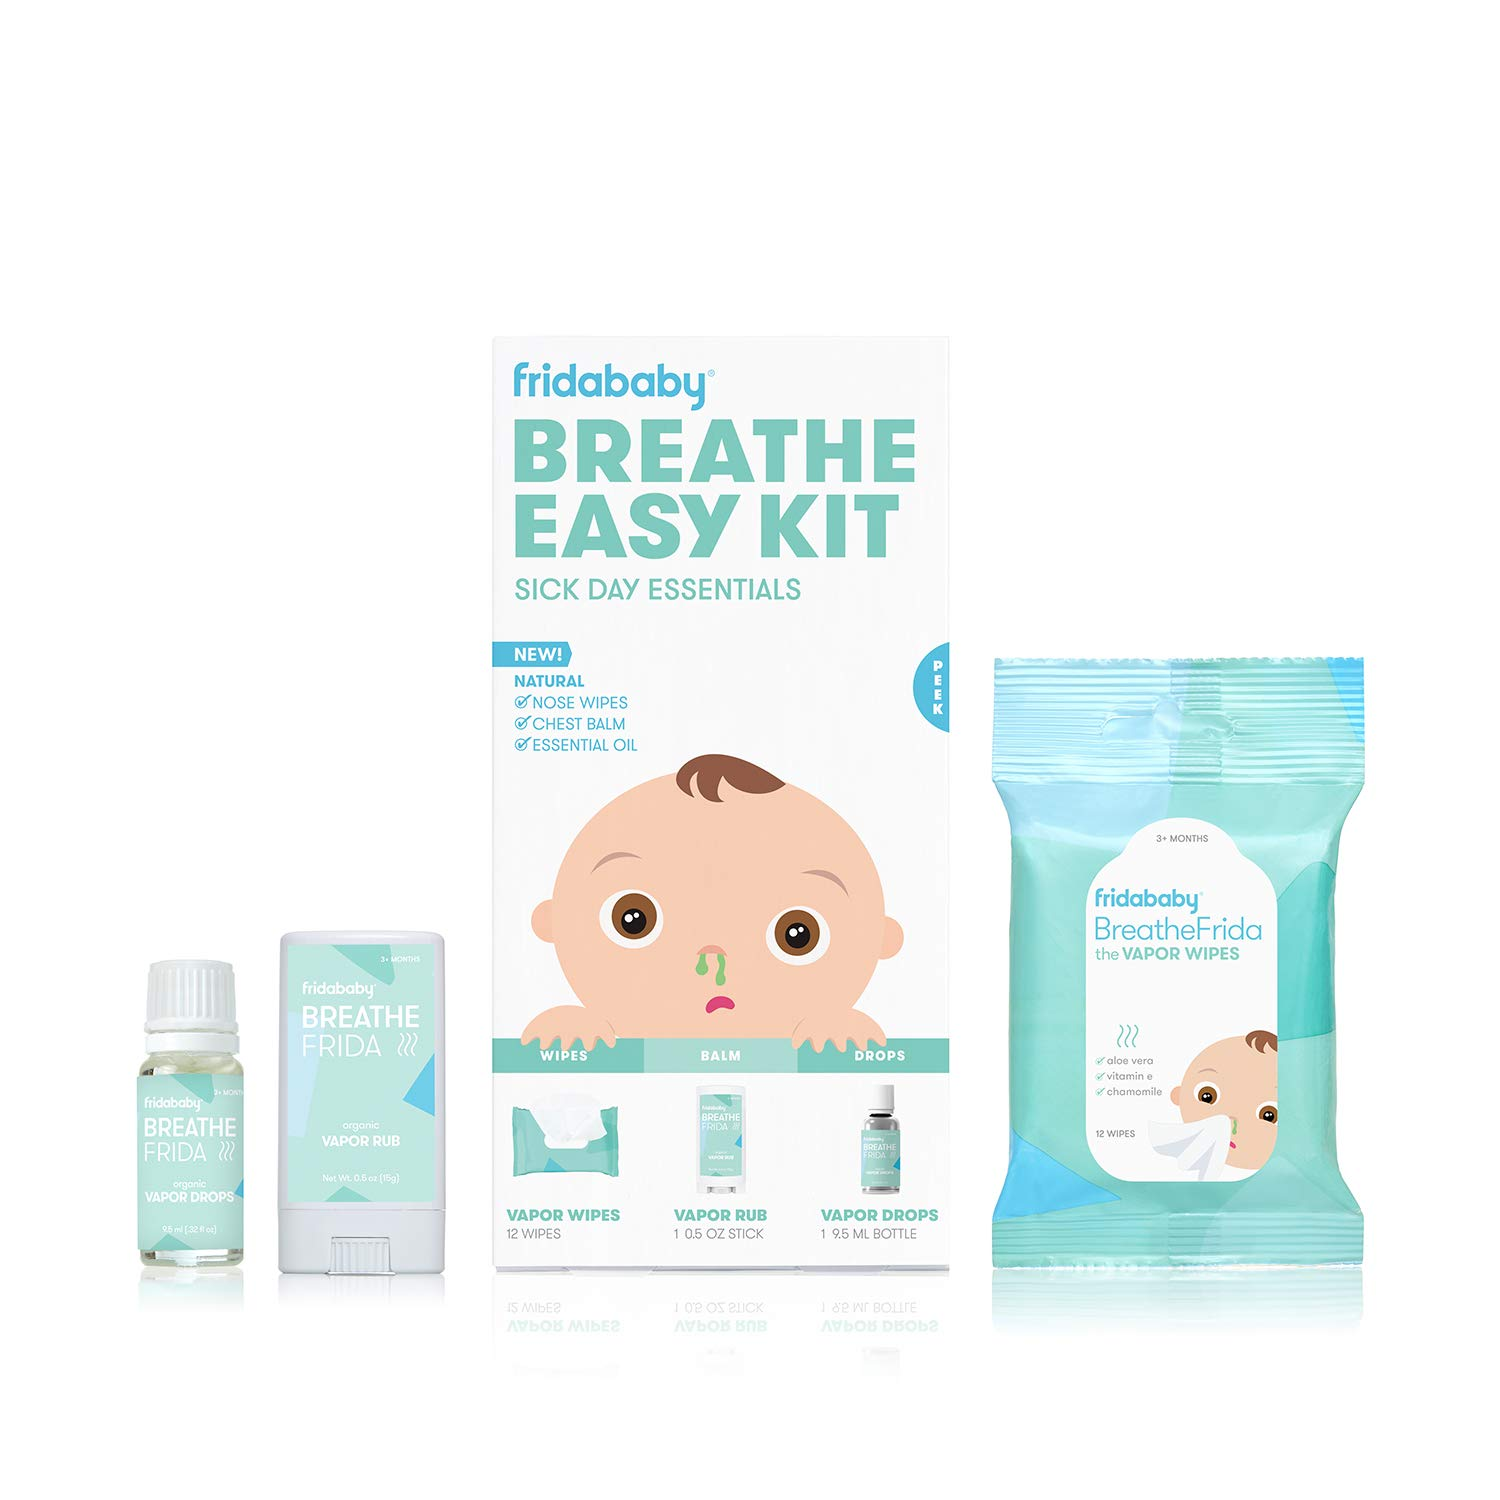 Baby and Toddler Breathe Easy Kit Sick Day Essentials by Fridababy- A Must-Have Set Includes Natural Nose and Chest Wipes, Organic No-Mess Chest Balm, and Organic Essential Oil for Bath or Diffuser by FridaBaby